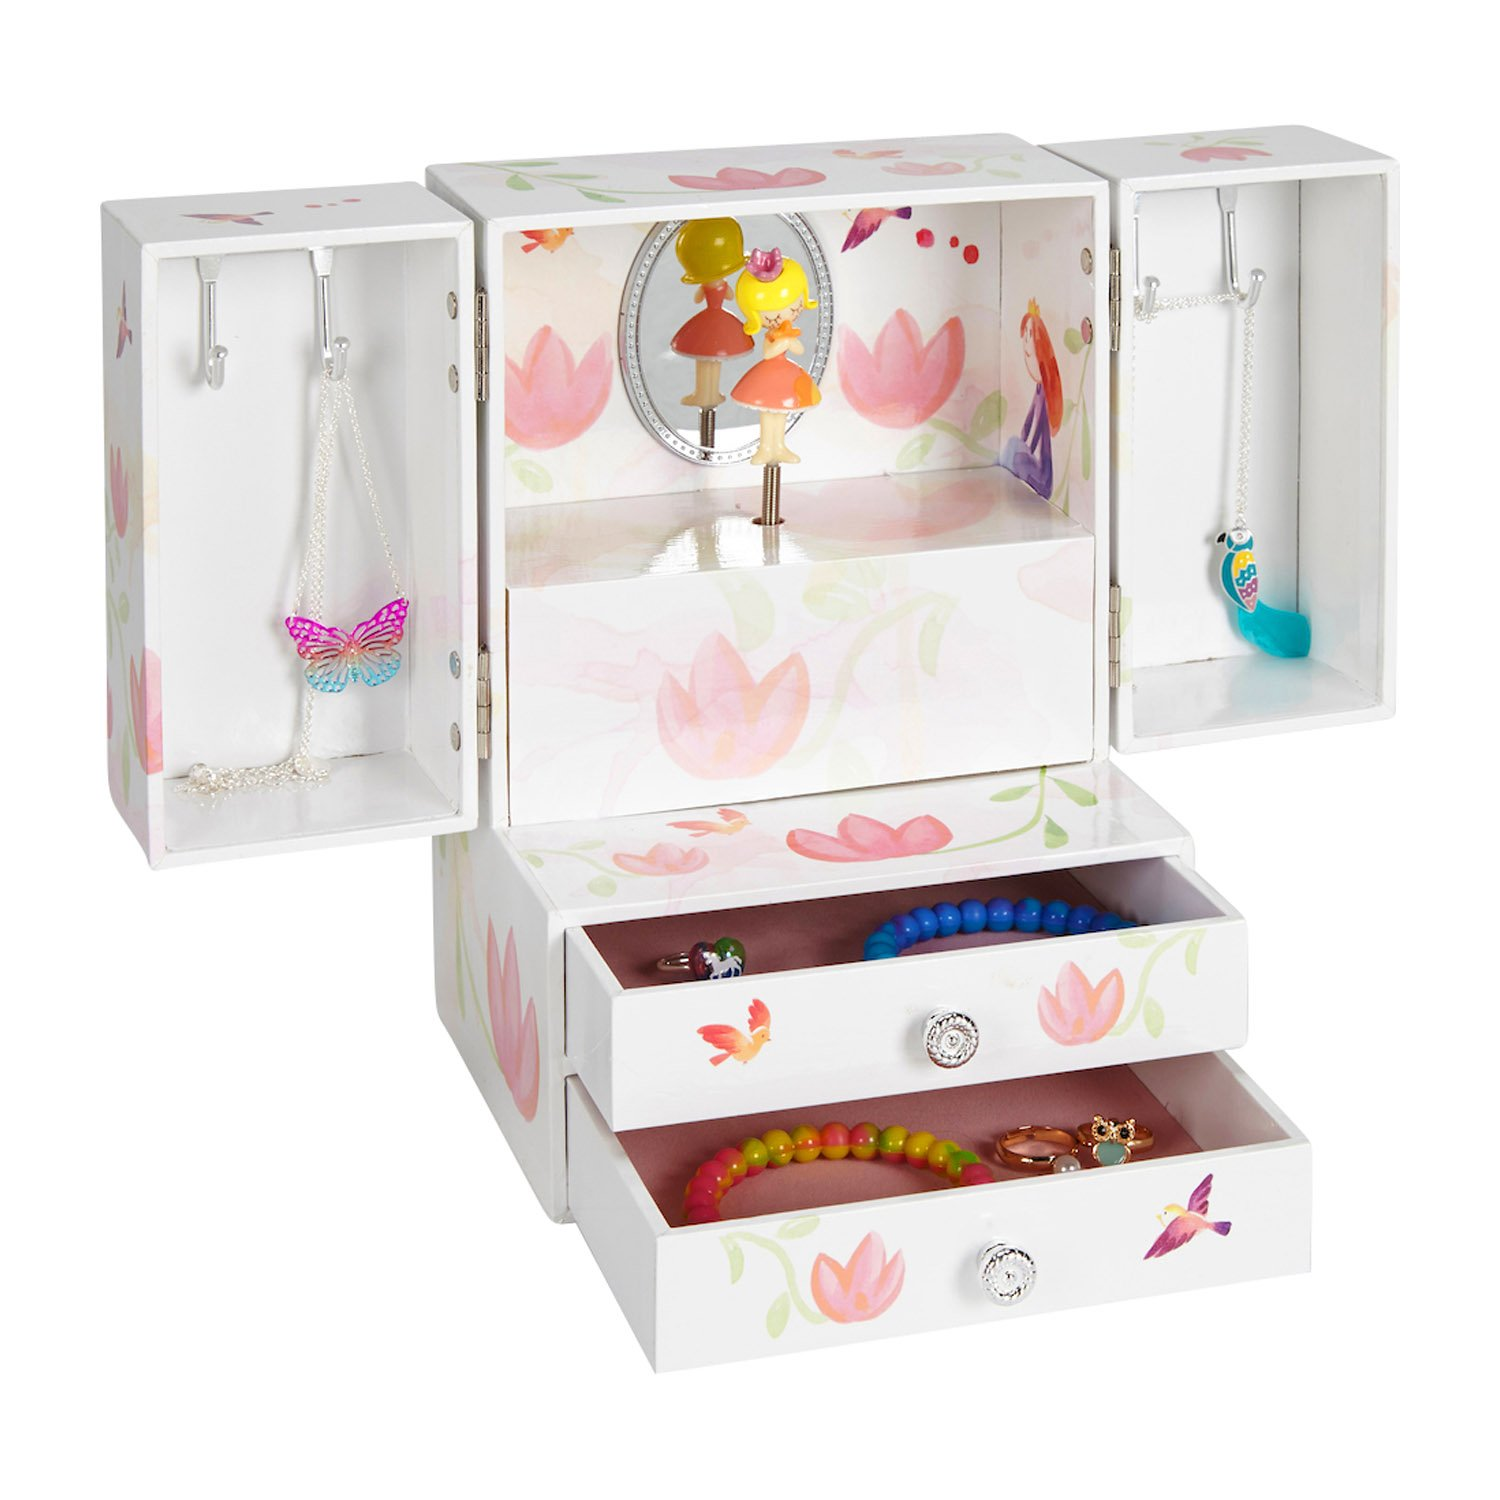 JewelKeeper Princess Musical Jewelry Armoire with 2 Pullout Drawers, White and Pink Flower Design, Waltz of the Flowers Tune